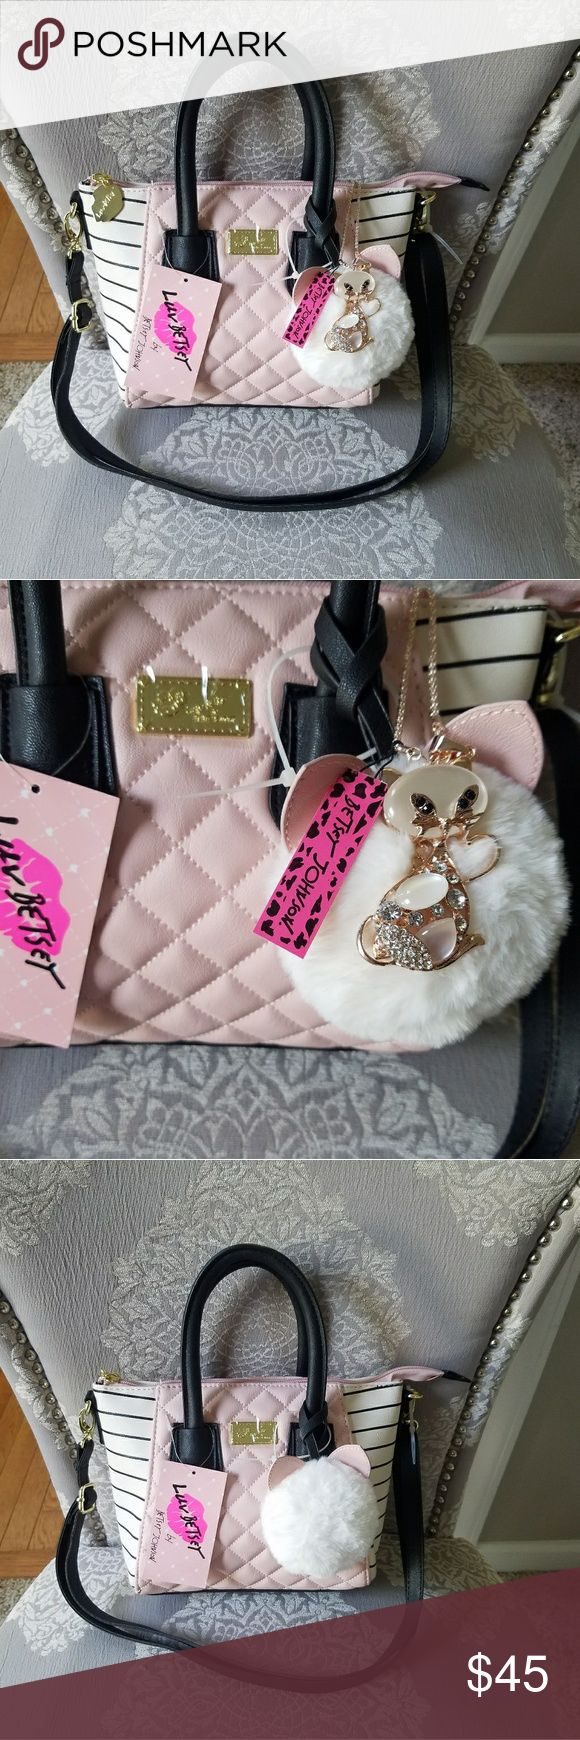 "Besty Johnson Purse and Necklace. *BUNDLE AND SAVE*  Besty Johnson Purse and Betsy Johnson Seimez Cat Necklace.  Purse- PINK Dom Mini Satchel.   Necklace- SIMIEZ CAT- 27"" + 3"" Extension..  Pendant- 6 x 3 cm. Besty Johnson Jewelry"